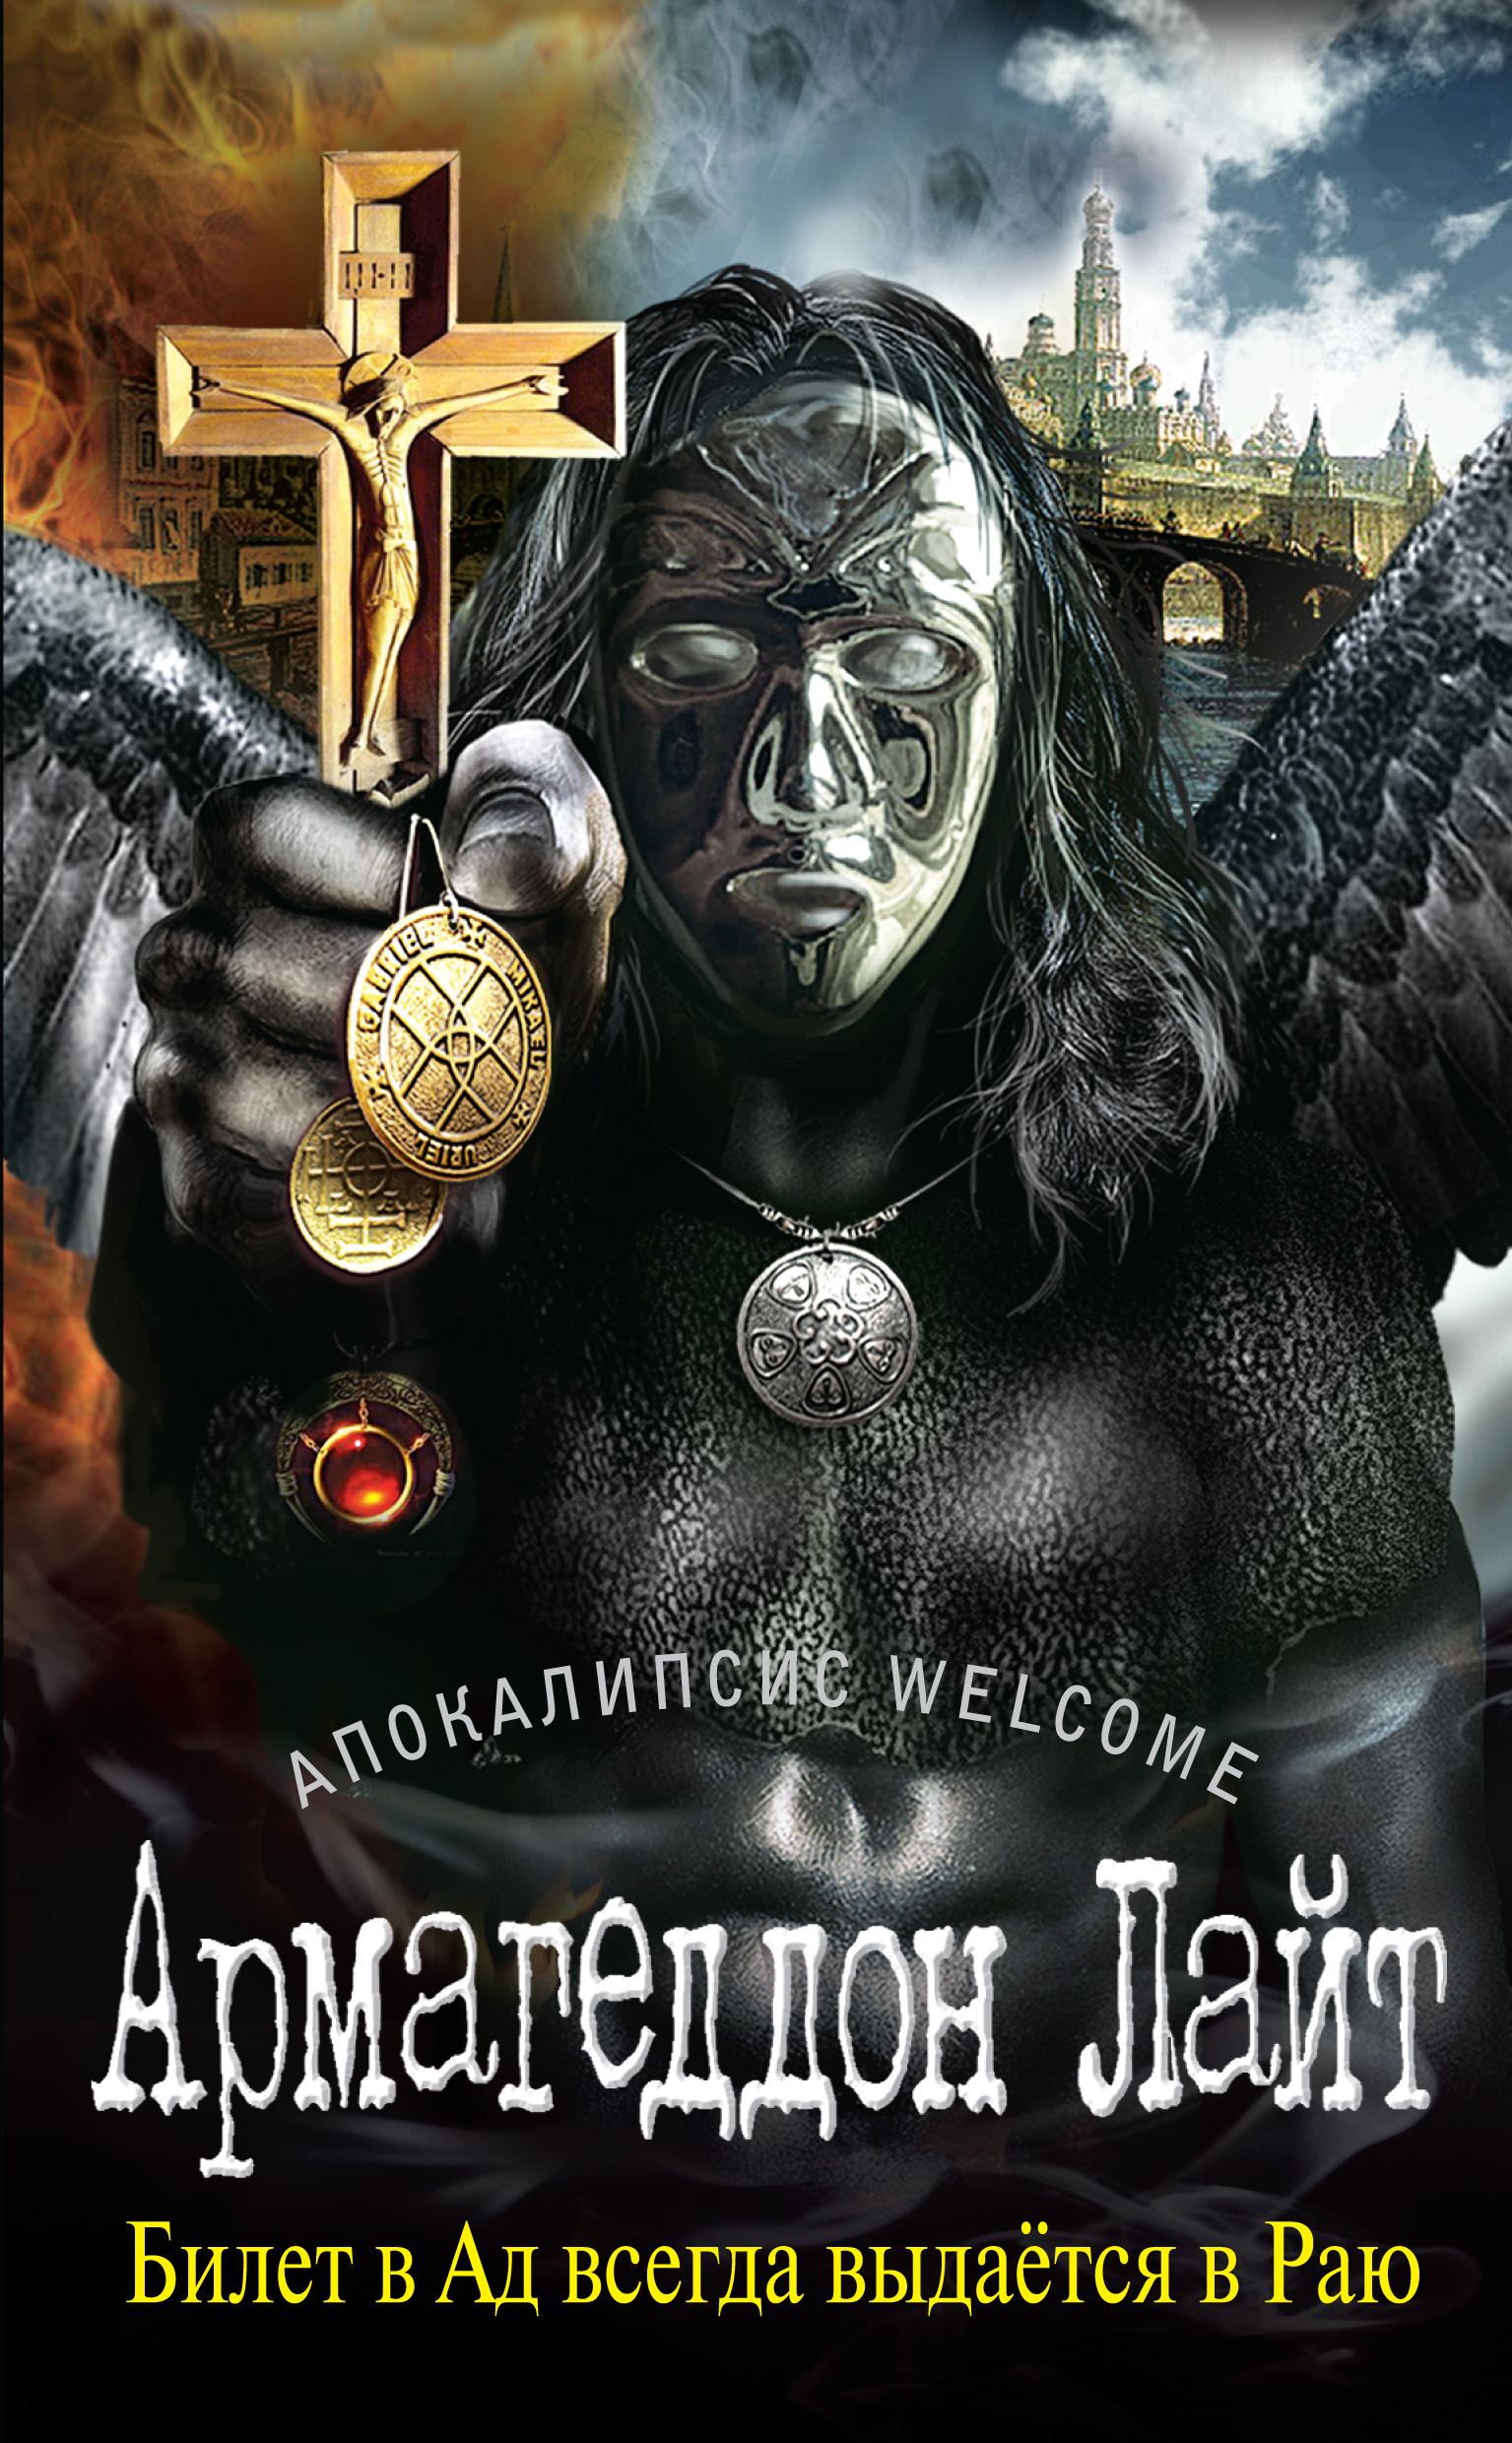 Zотов Апокалипсис Welcome: Армагеддон Лайт zотов апокалипсис welcome армагеддон лайт